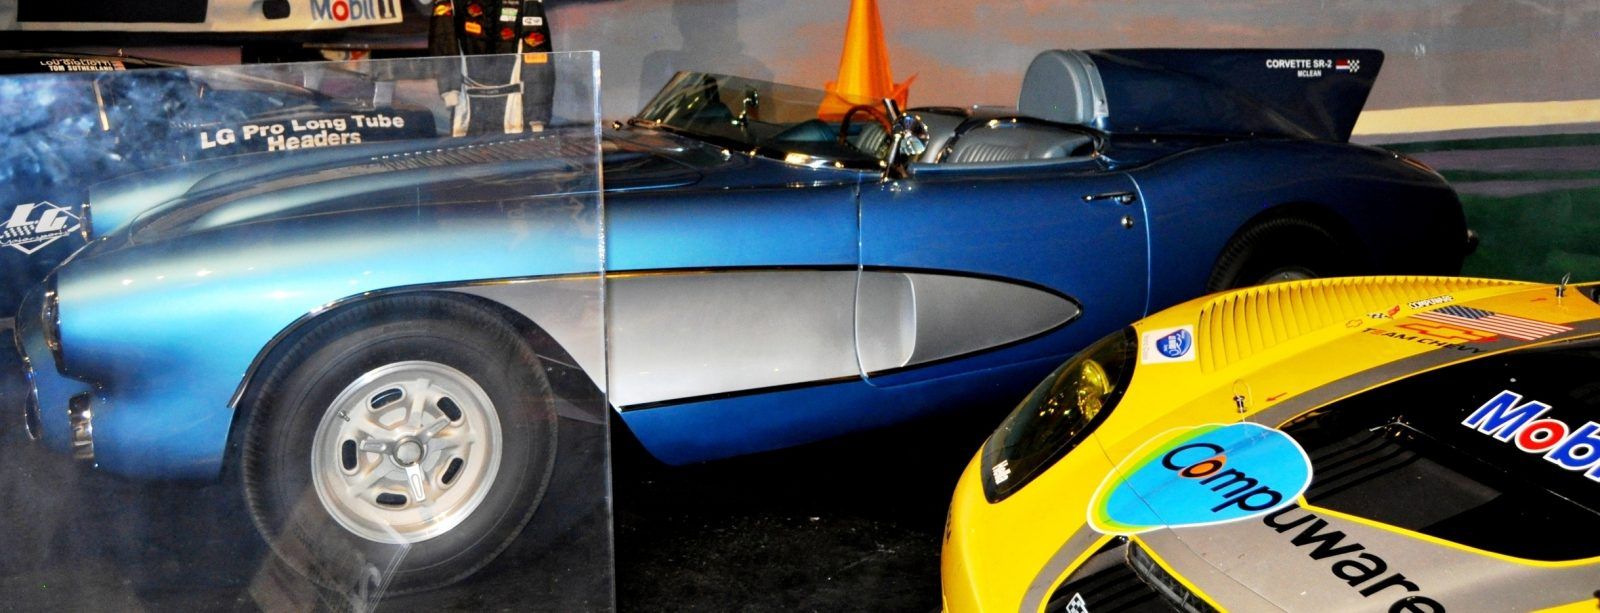 Corvette Museum -- The Racecars! 58 High-Res Photos -- Plus NCM Motorsports Park A High-Speed Dream 41